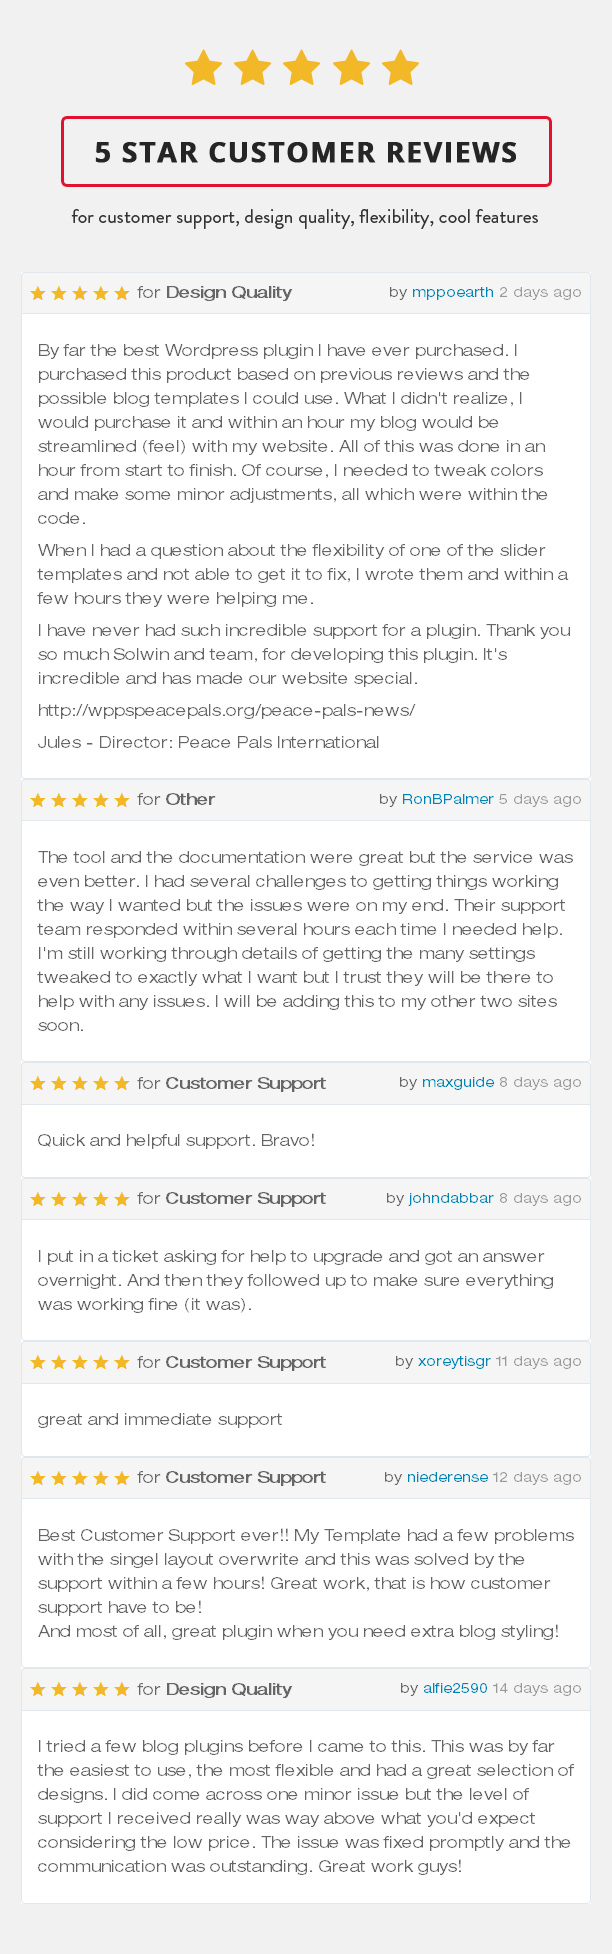 Blog Designer PRO Customer Review and Ratings